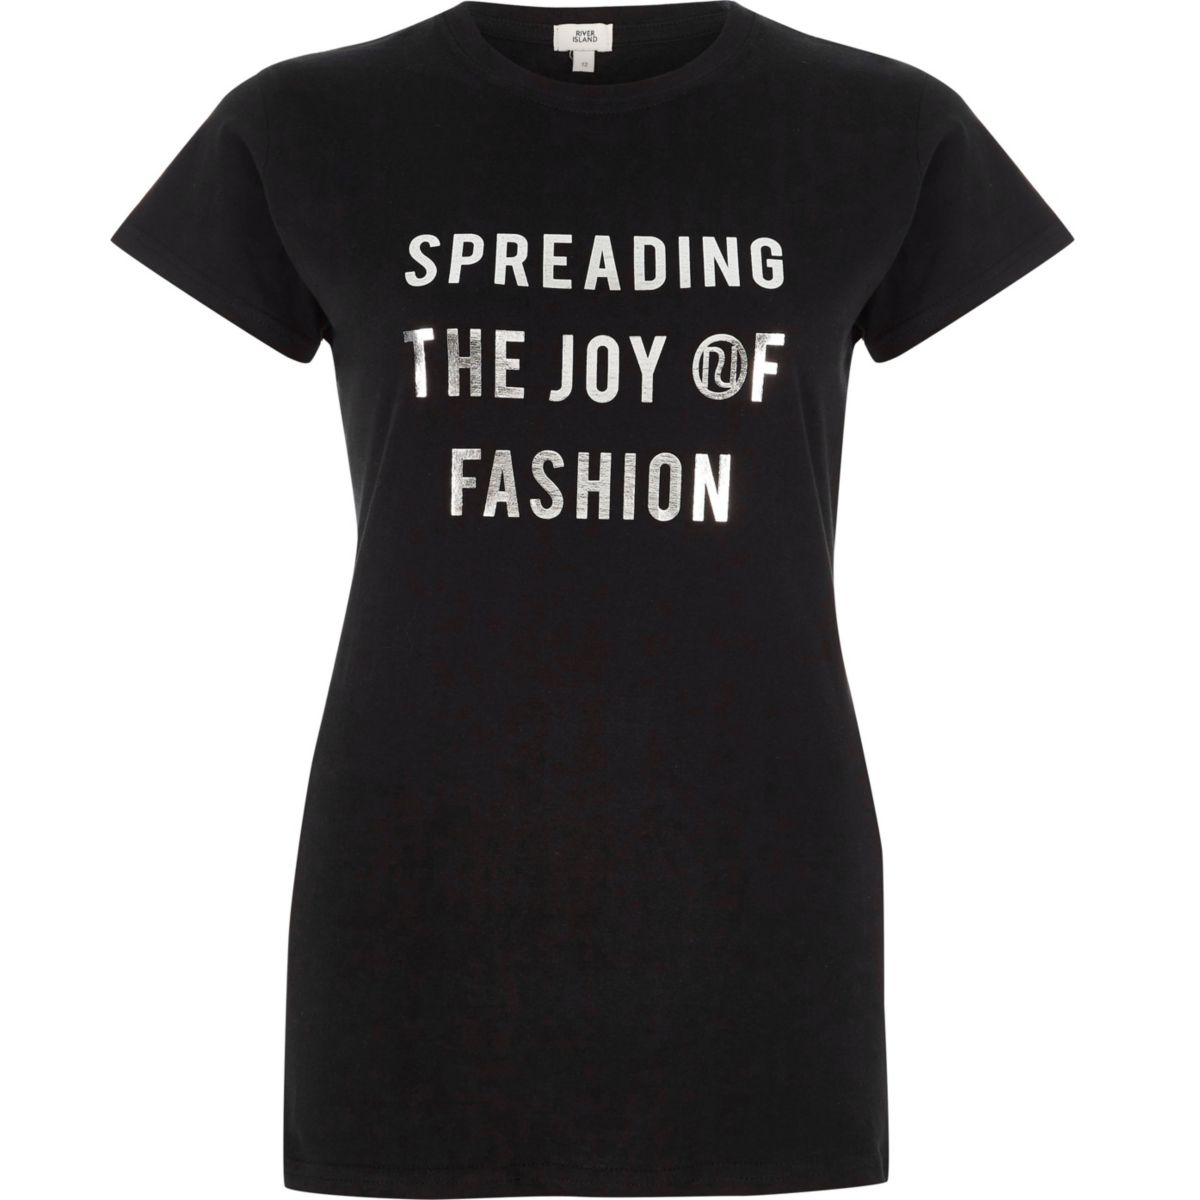 T-shirt imprimé « spreading the joy » noir